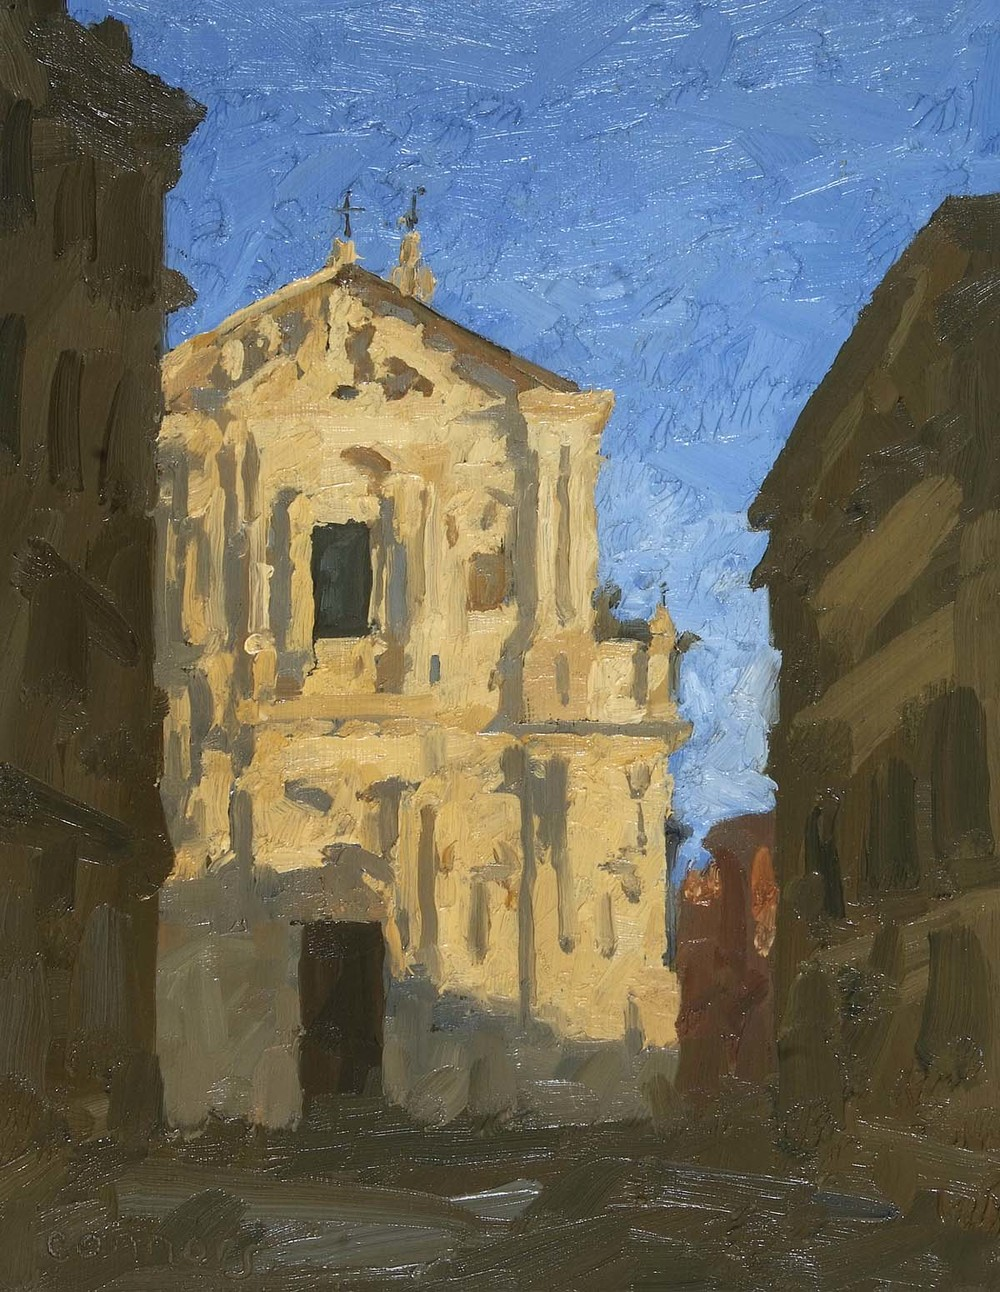 Sant'Andrea della Valle, 12 x 9.5 inches, oil on prepared paper